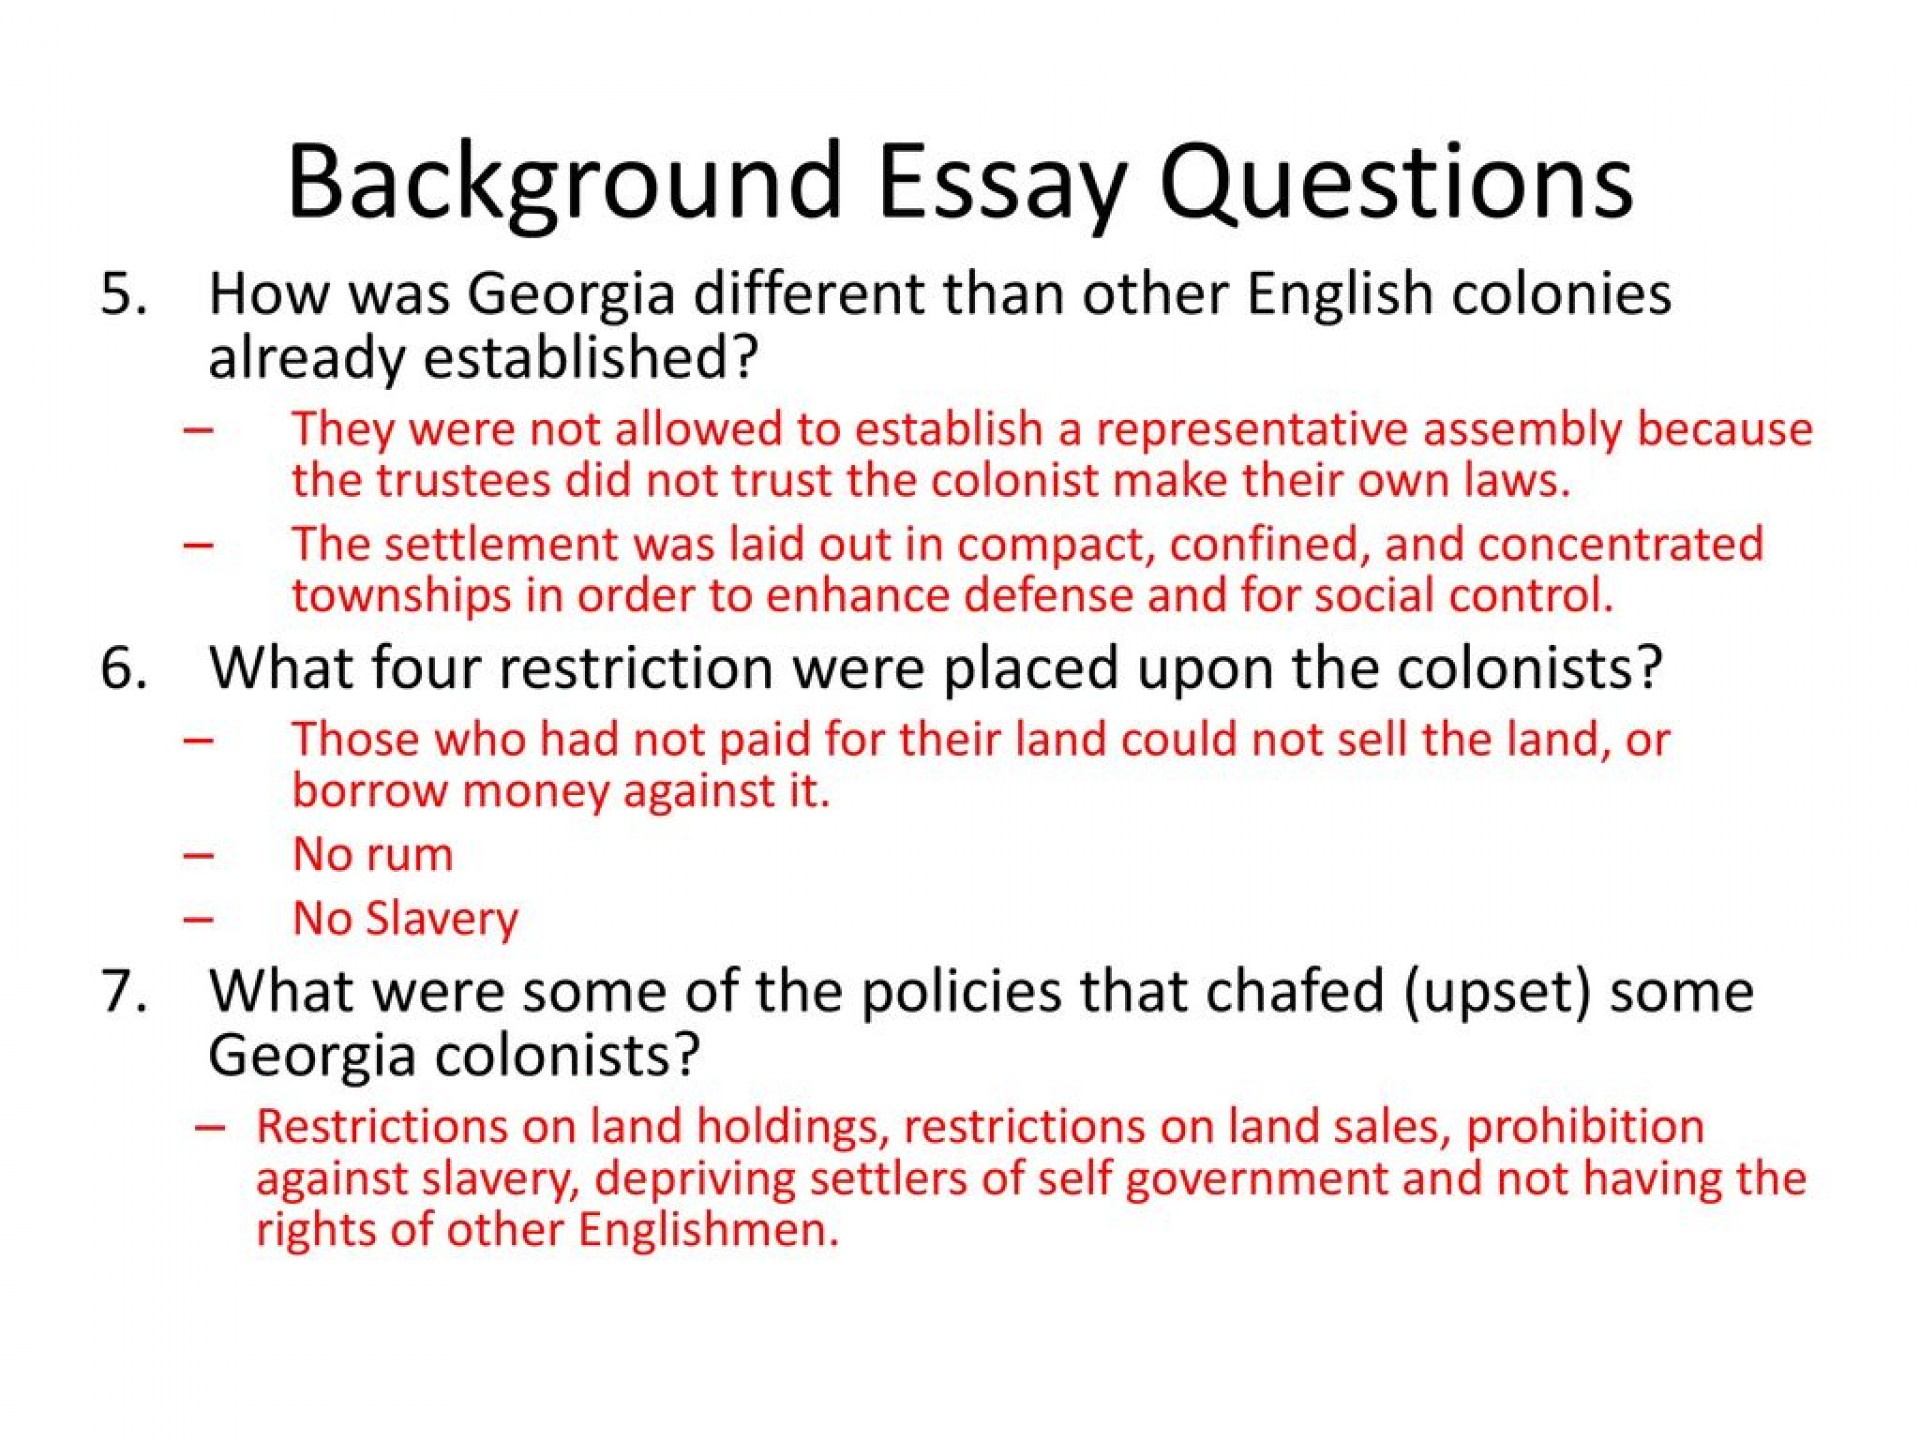 002 Background Essay Ppt Download Questions Answer Key Backgroundessayques Pearl Harbor Electoral College Declaration Of Independence Salem Mini Q Causes Ww1 Harriet Tubman Staggering Answers Renaissance Constitution 1920